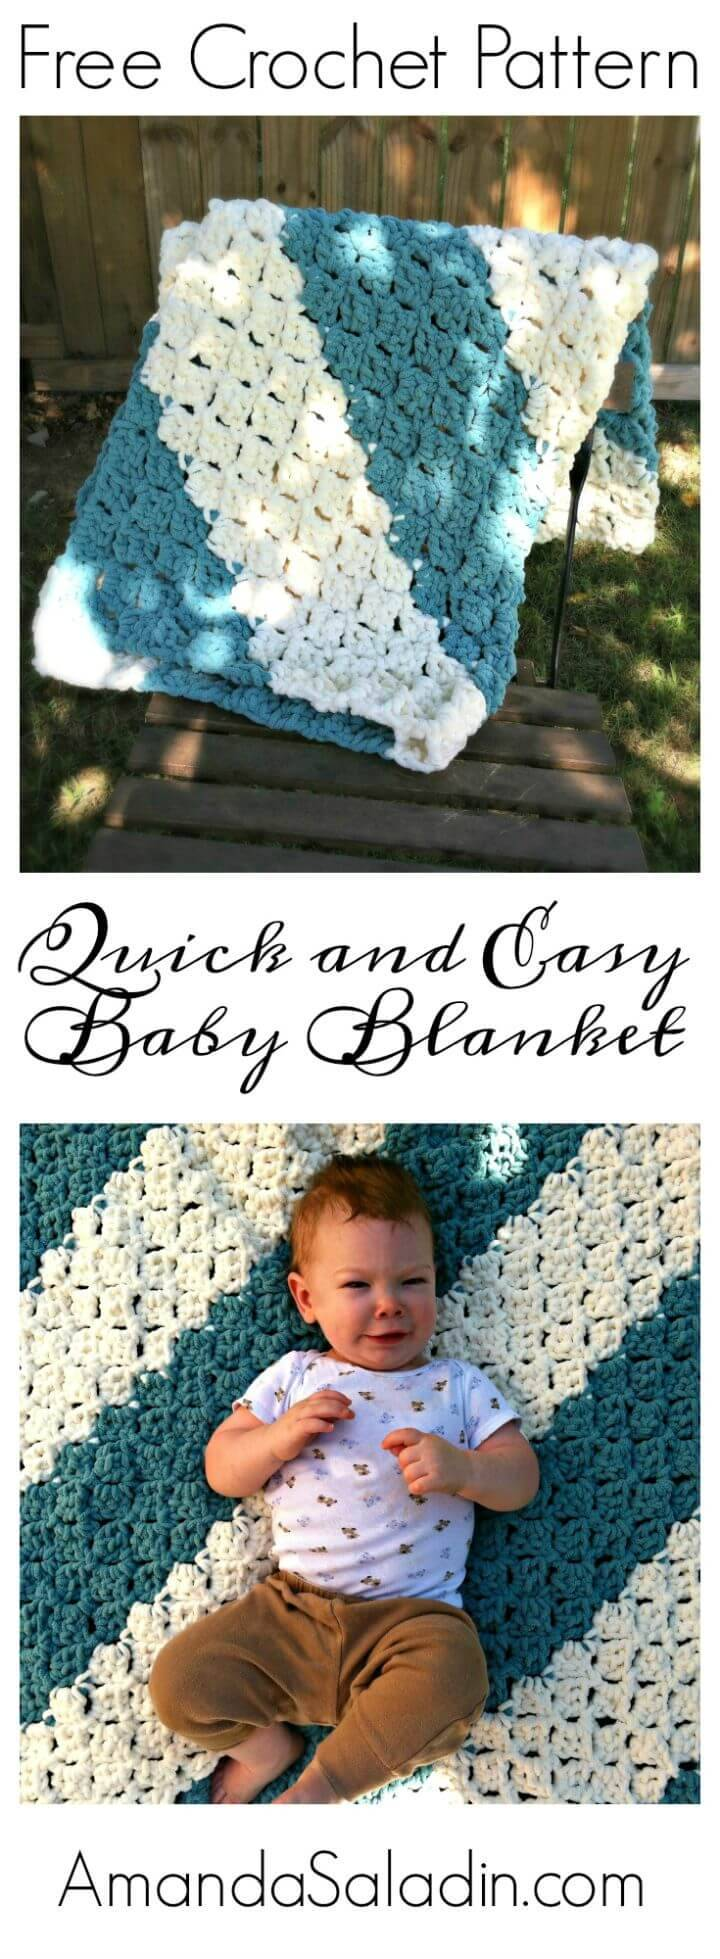 Quick and Easy Baby Blanket – Free Crochet Pattern